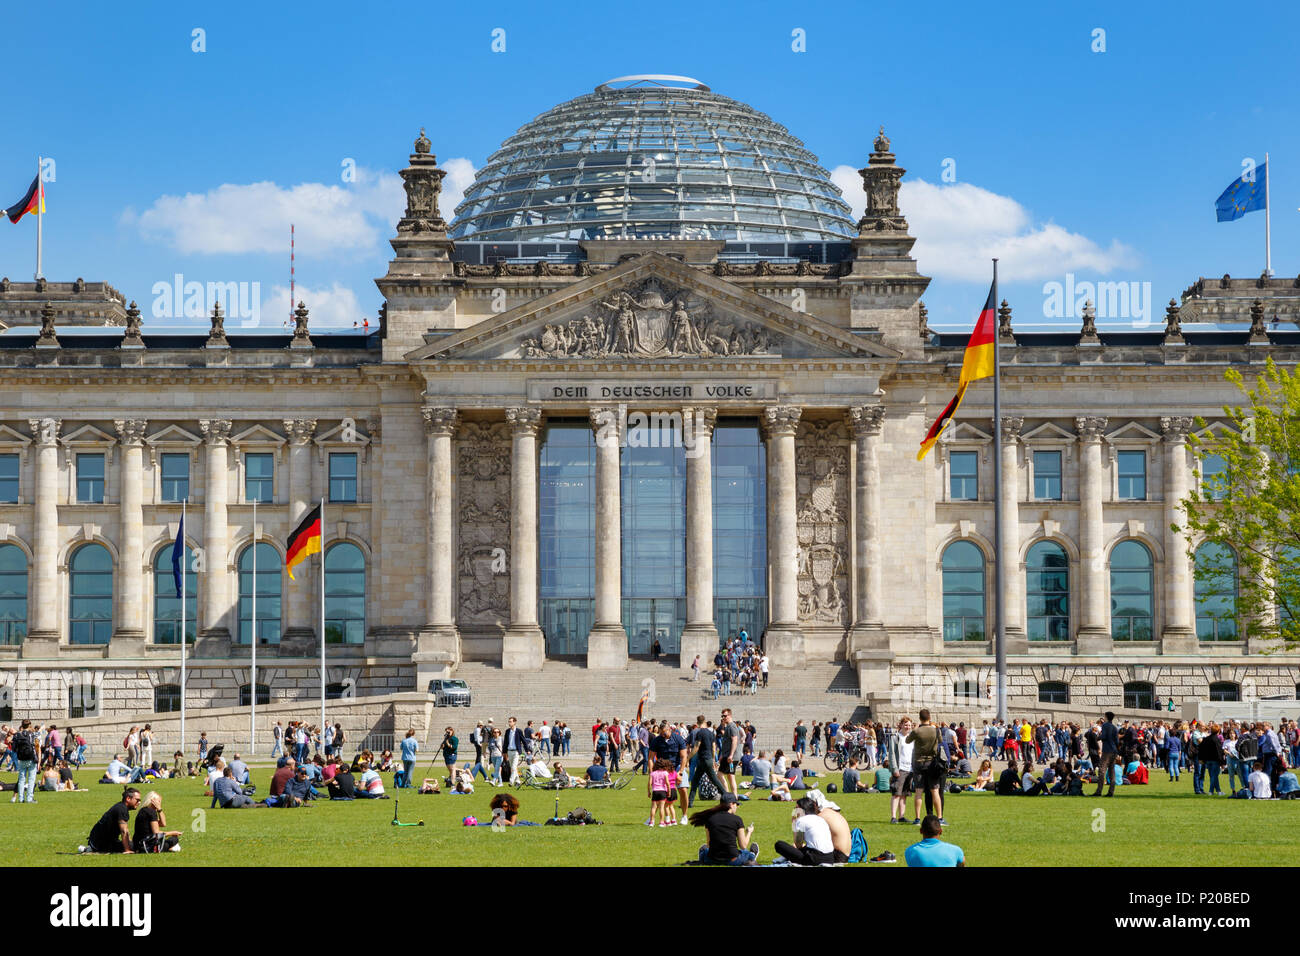 BERLIN, GERMANY - APR 28, 2018: People relaxing on the grass in front of the Reichstag building, seat of the German Parliament (Deutscher Bundestag). - Stock Image